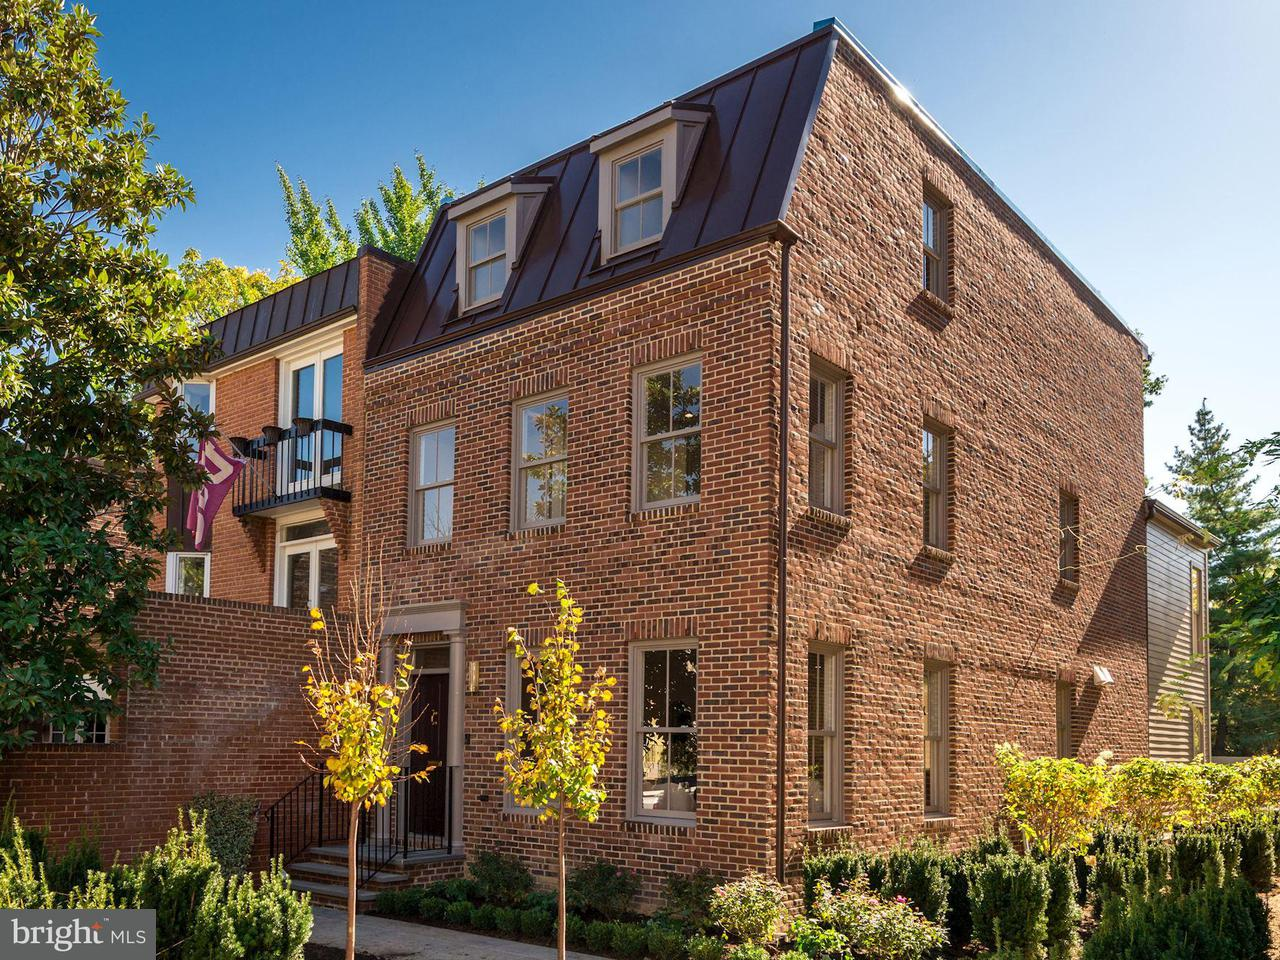 Townhouse for Sale at 3324 Dent Pl Nw 3324 Dent Pl Nw Washington, District Of Columbia 20007 United States